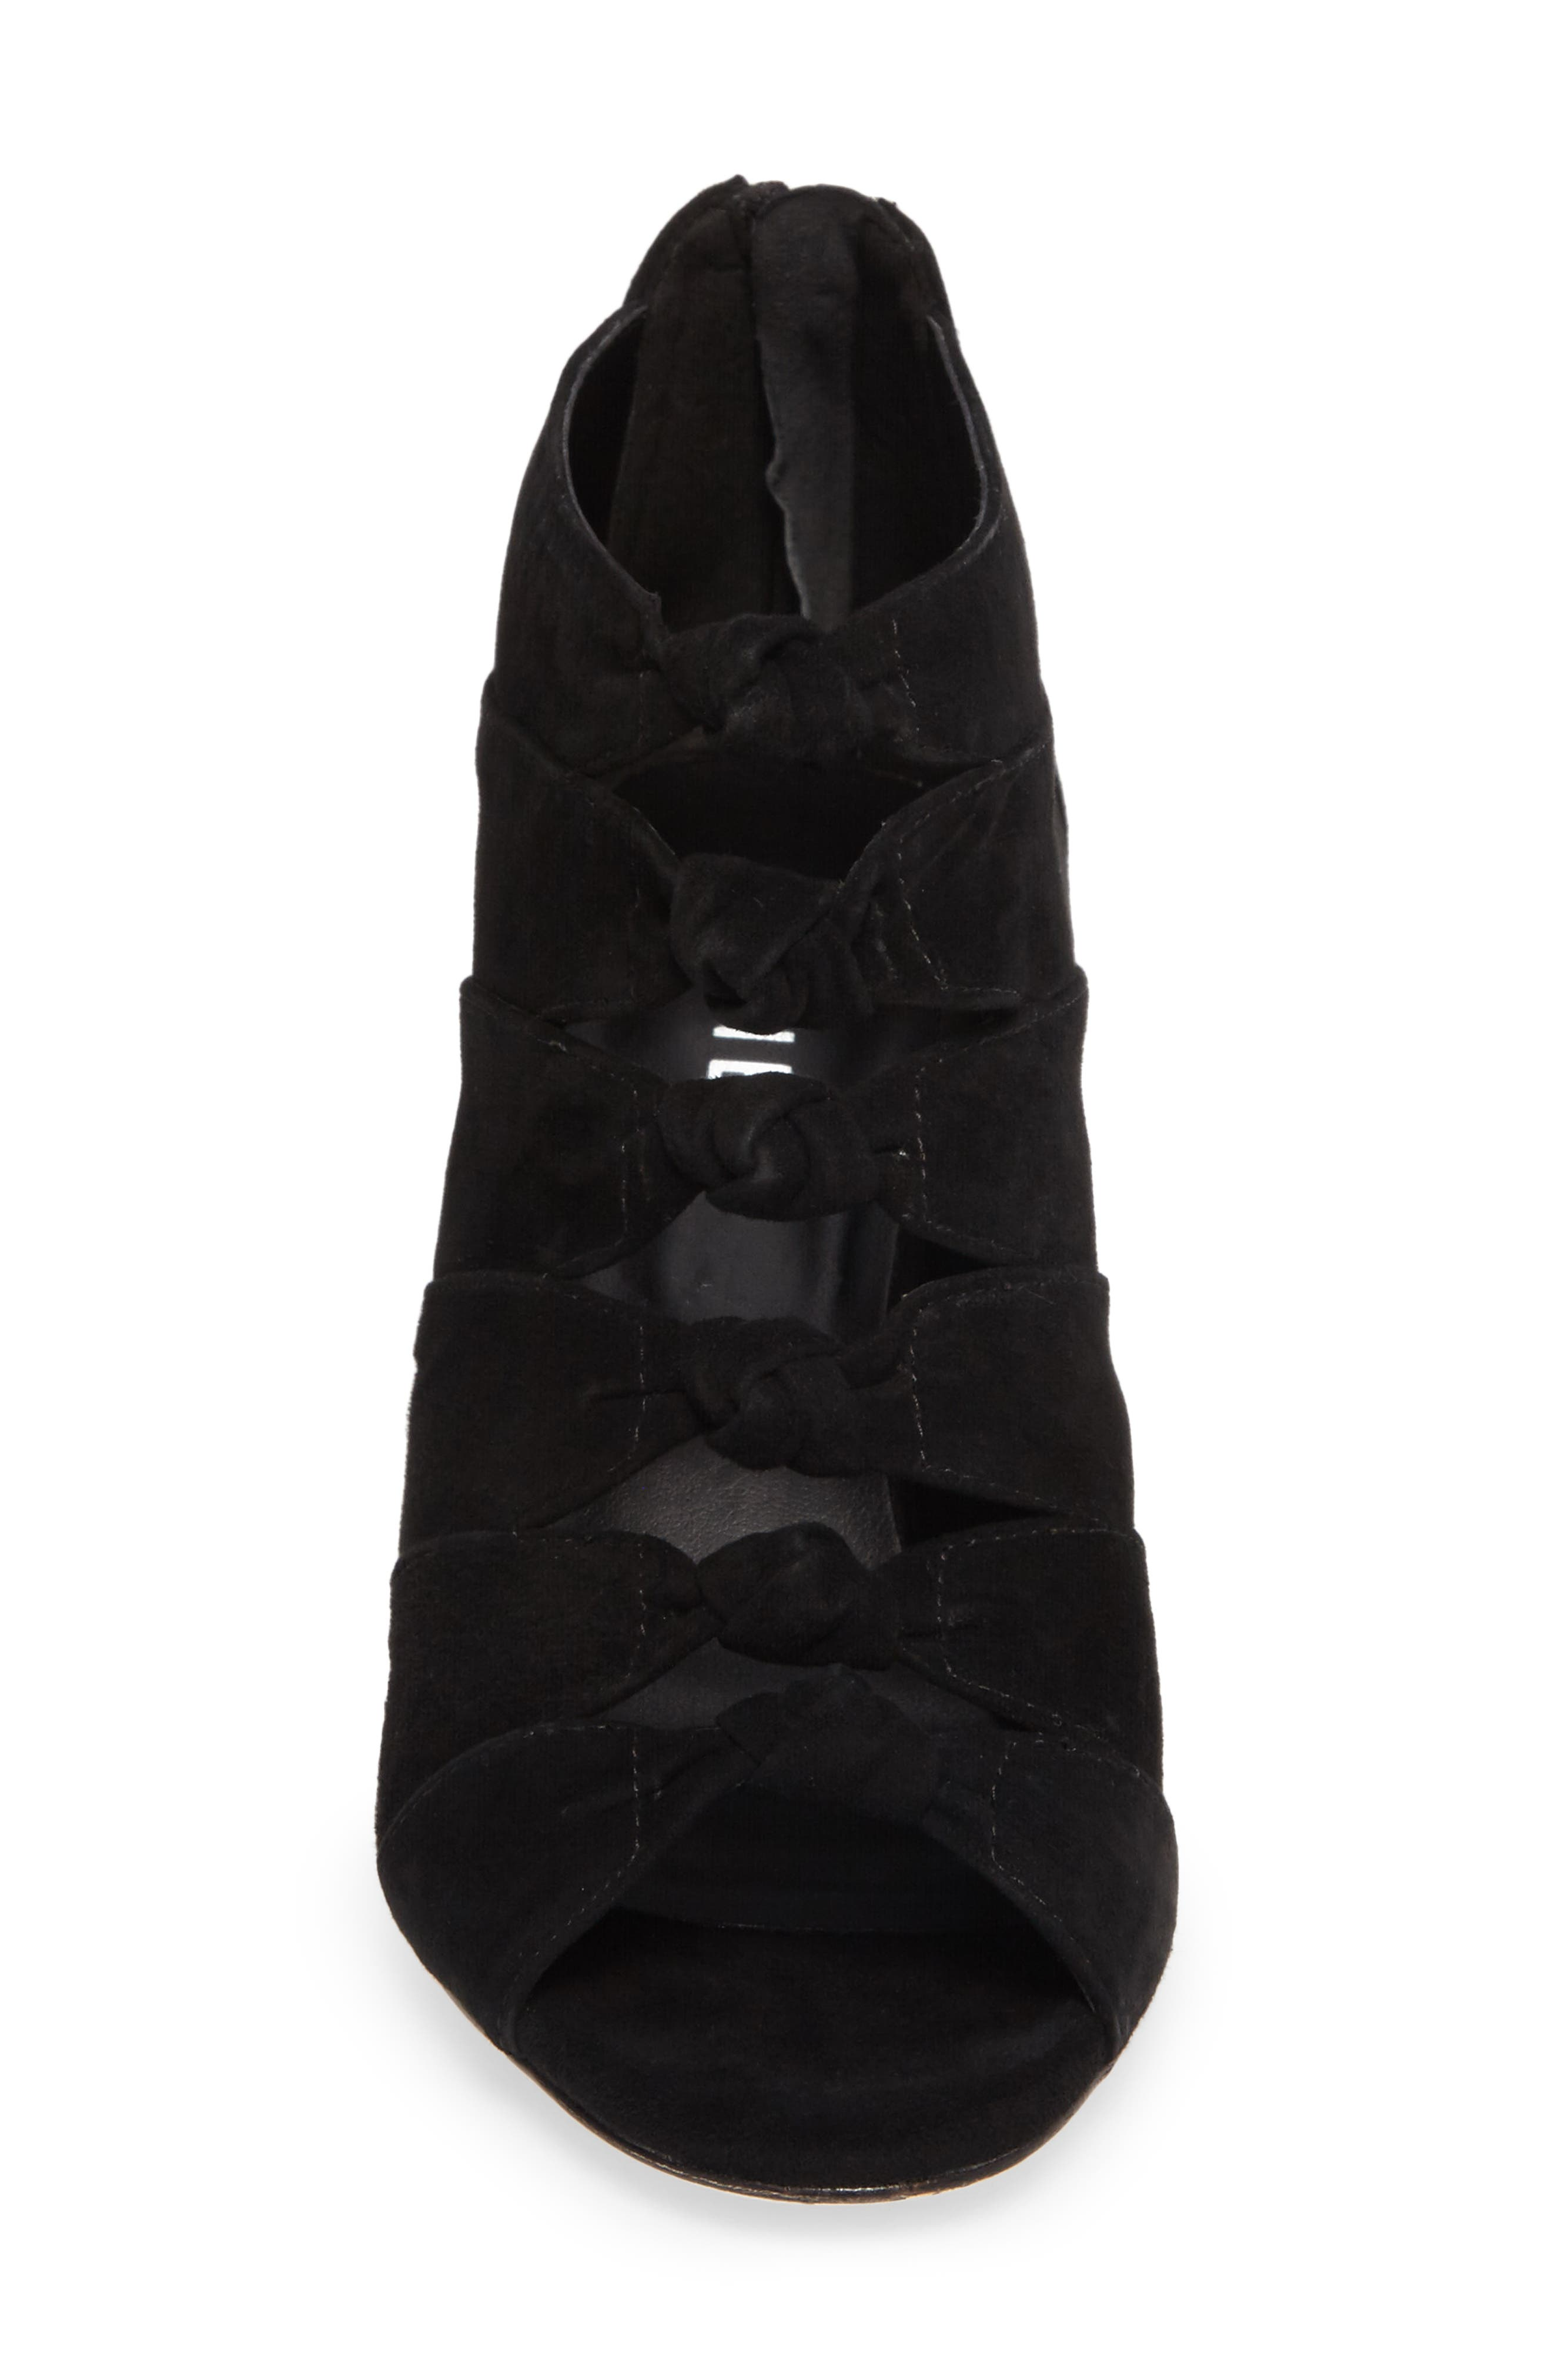 Betsy Open Toe Bootie,                             Alternate thumbnail 4, color,                             Black Suede